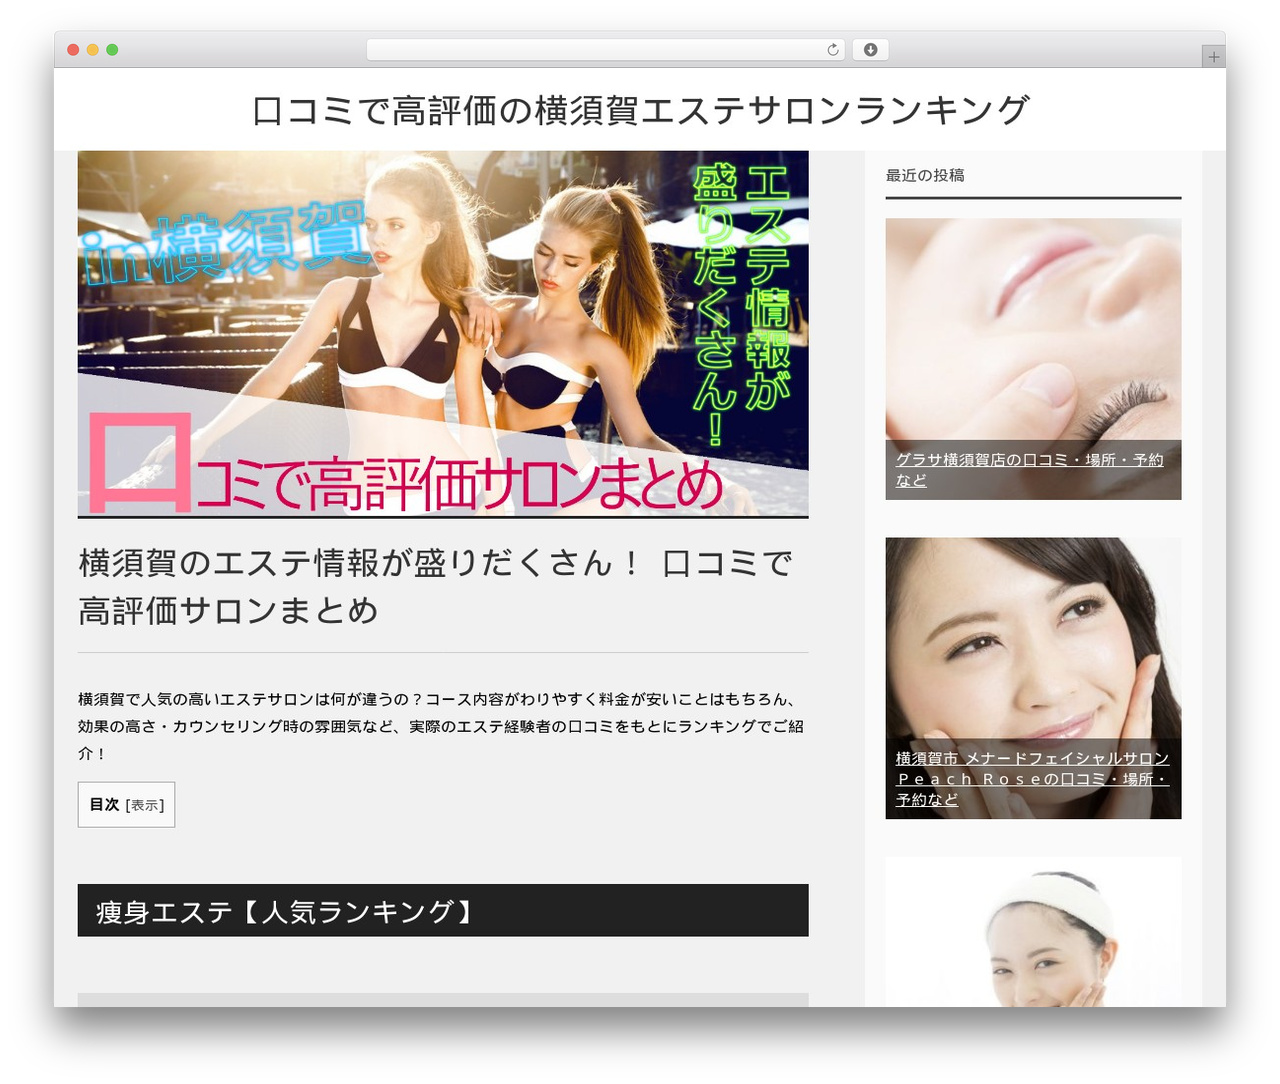 賢威7.0 クール版 template WordPress - xn--ick8azb9903b4evbcfo.xyz